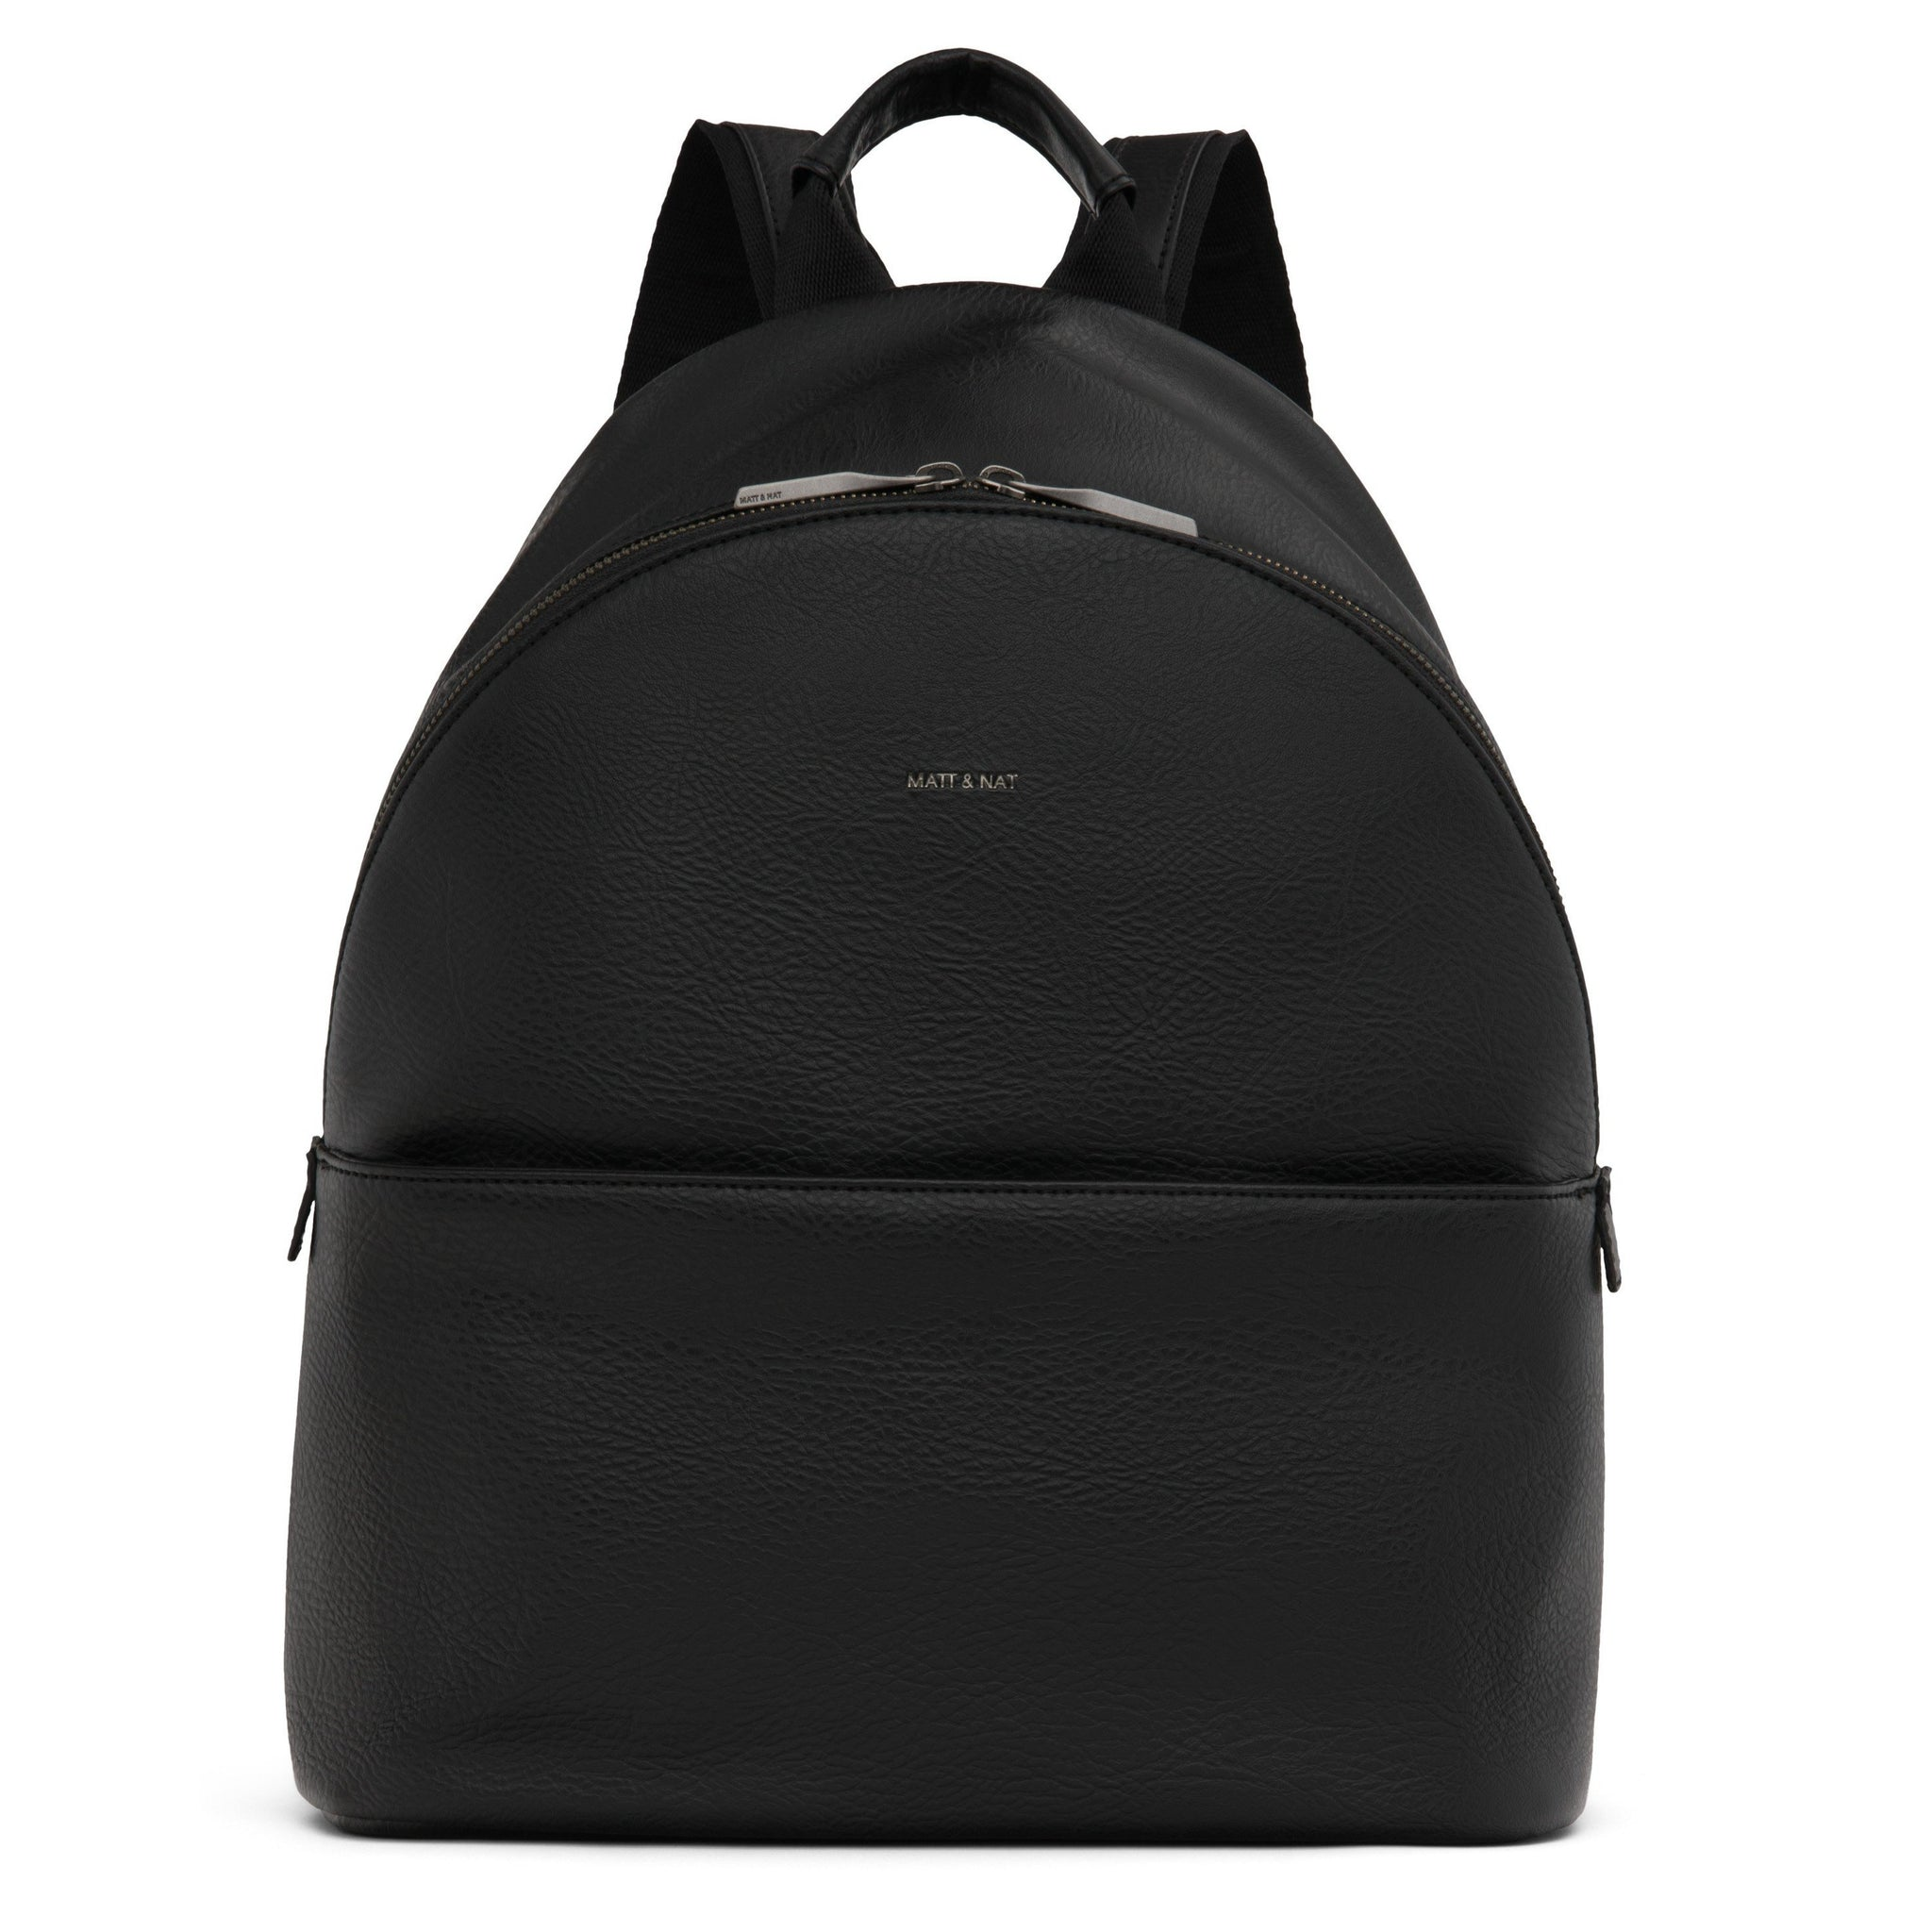 MATT & NAT - JULY BACKPACK IN BLACK